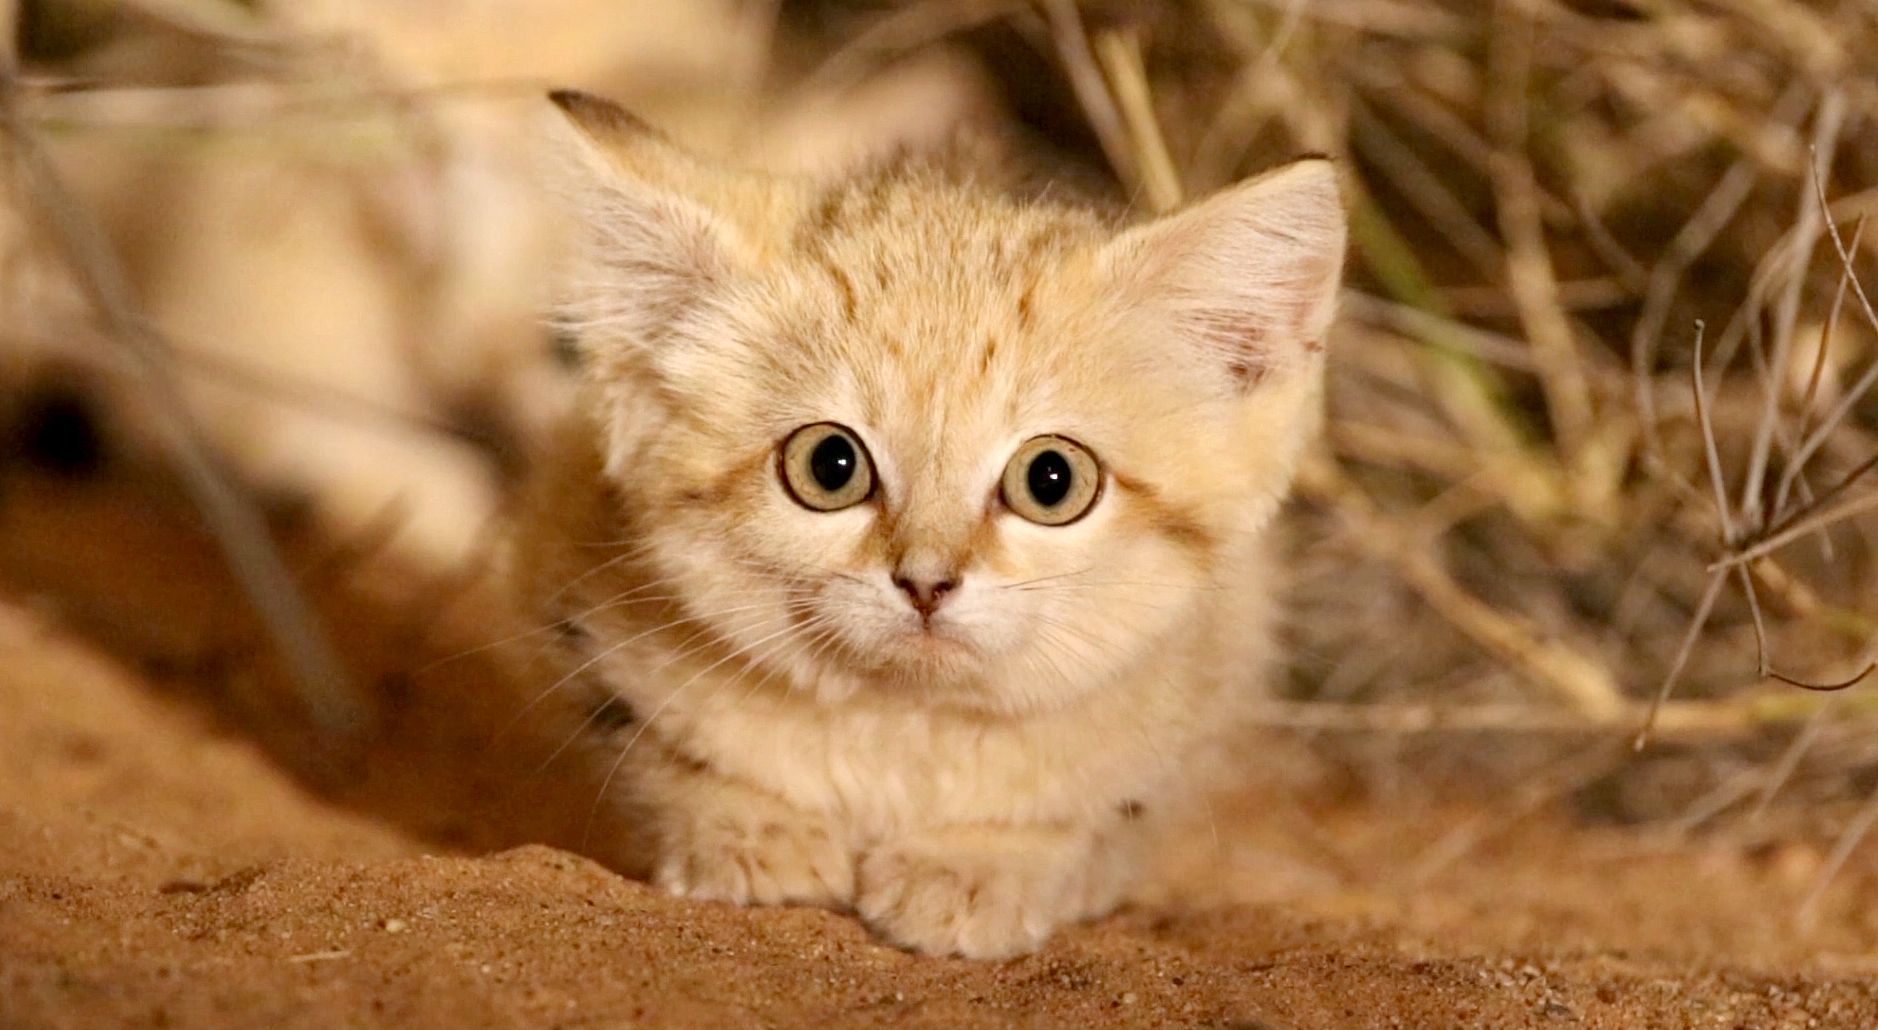 Sand Cat Kittens ed in the Wild for First Time